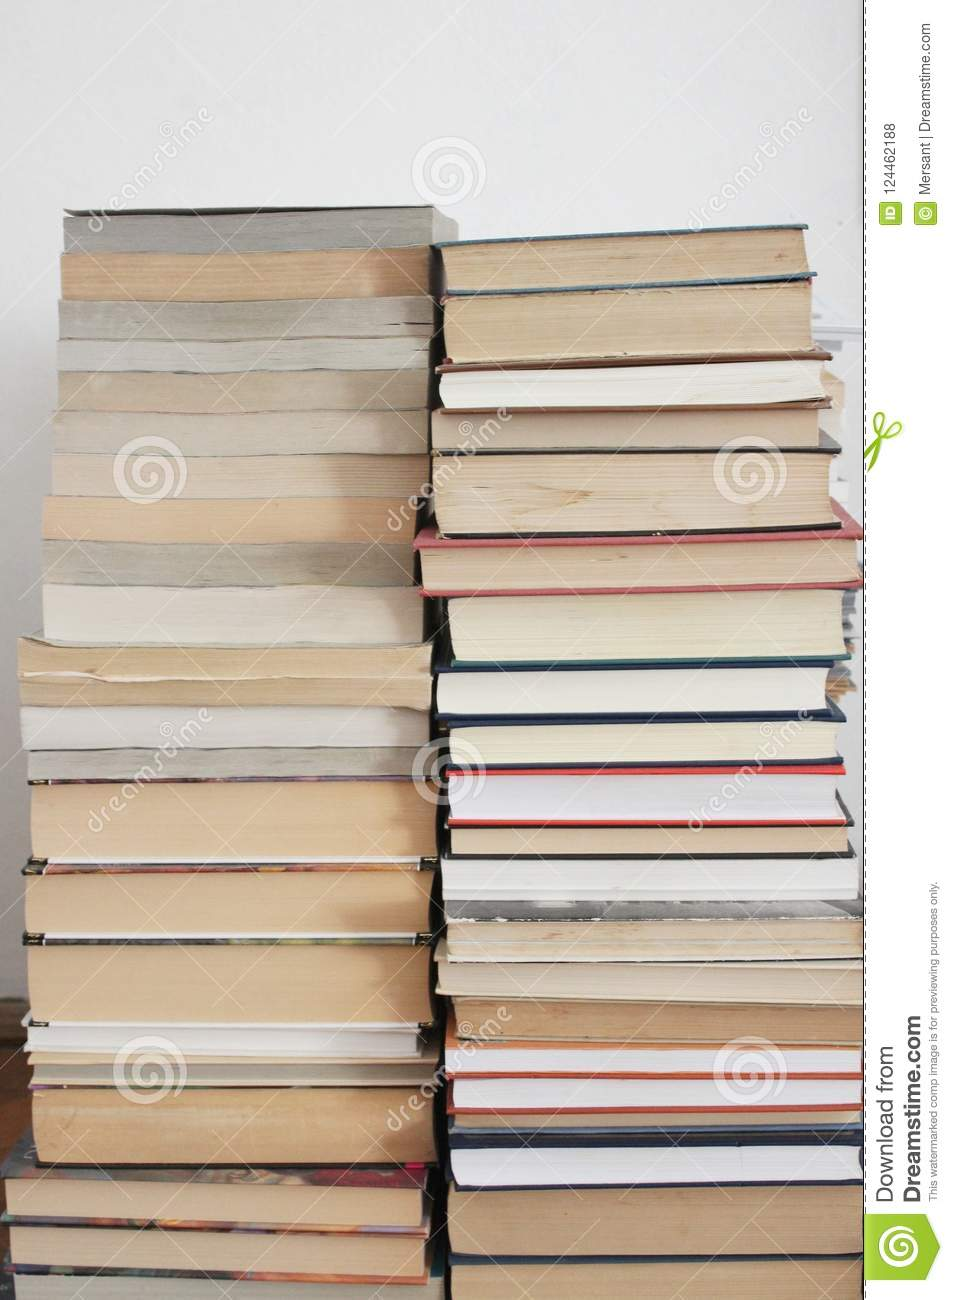 A lot of books